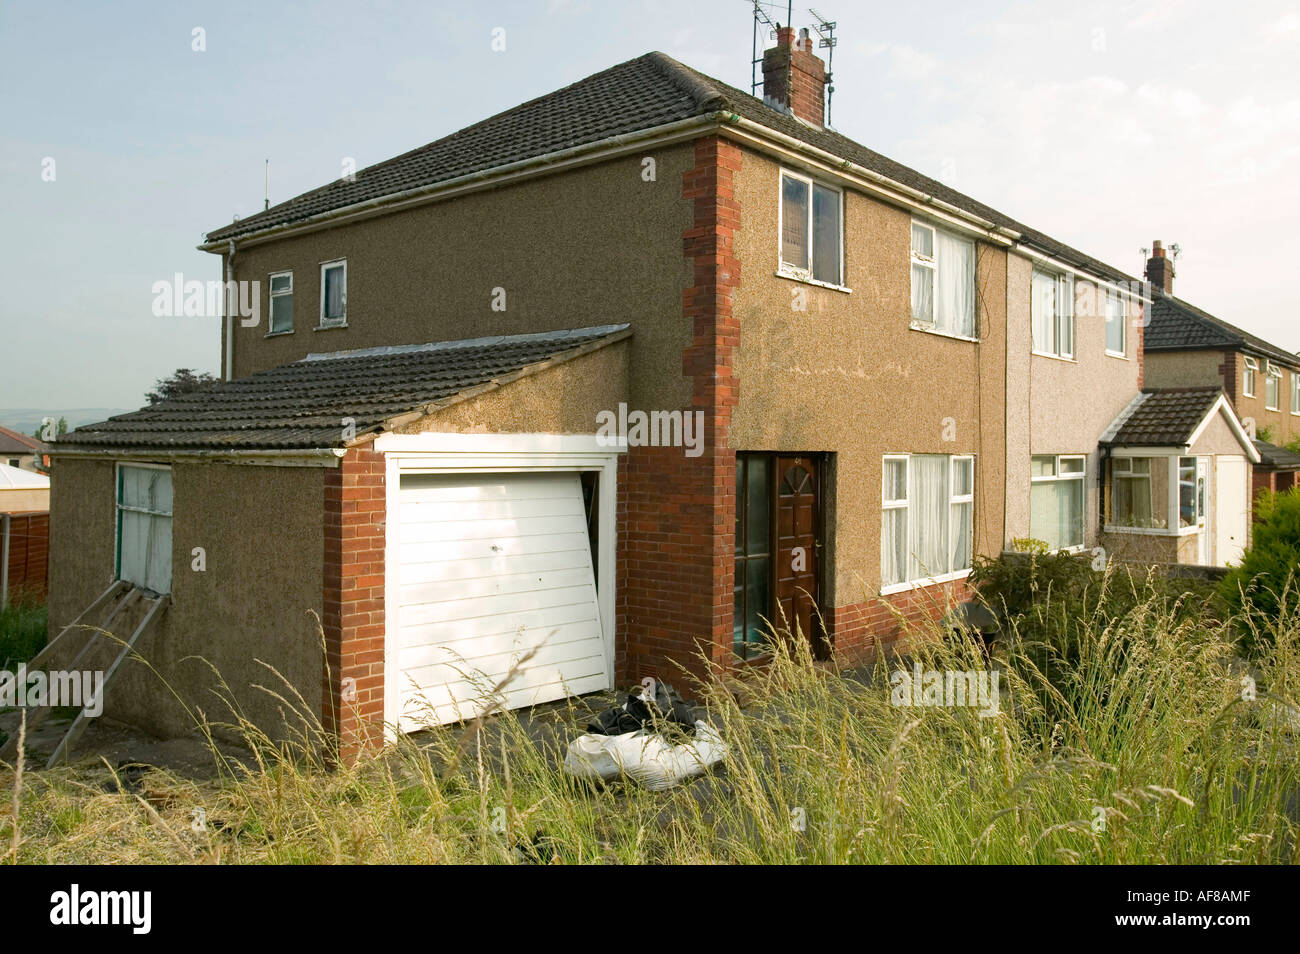 Semi Detached House a run down , neglected semi detached house next to a well loooked